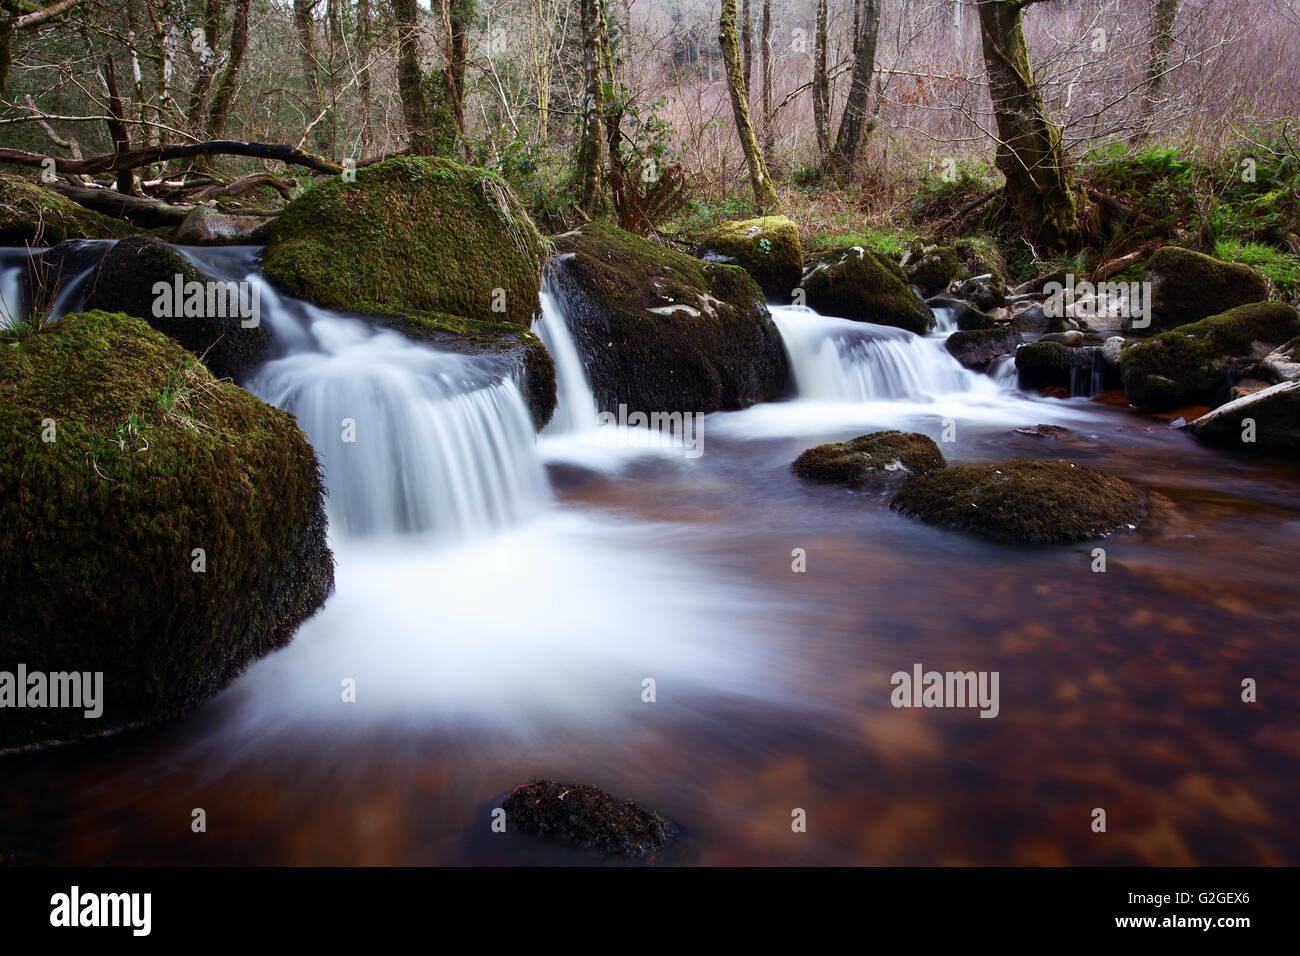 A small waterfall on the River Bovey within the Dartmoor National Park devon Uk - Stock Image